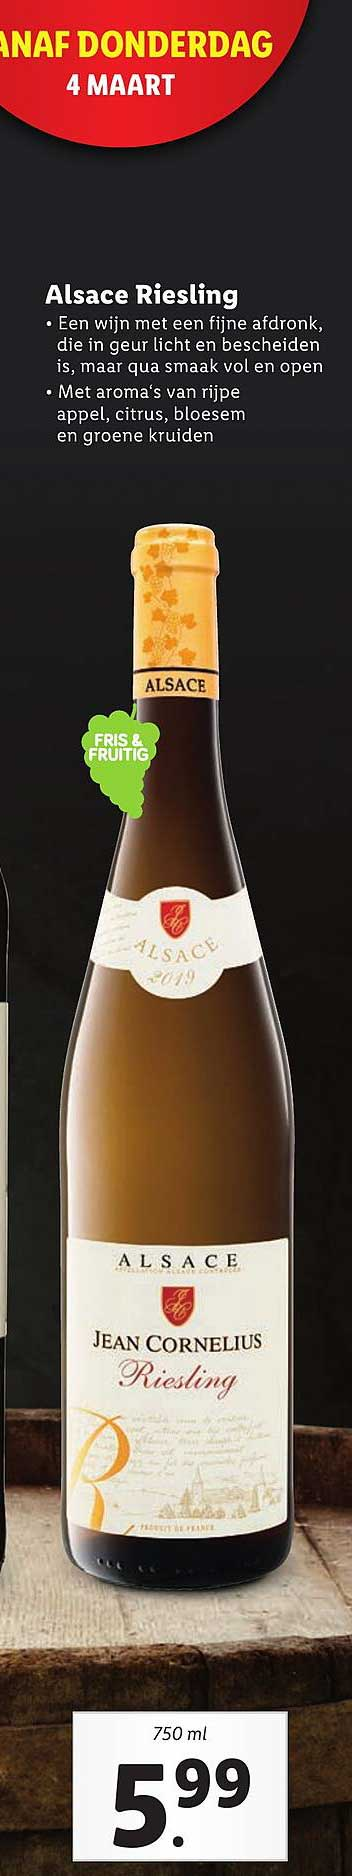 Lidl Alsace Riesling